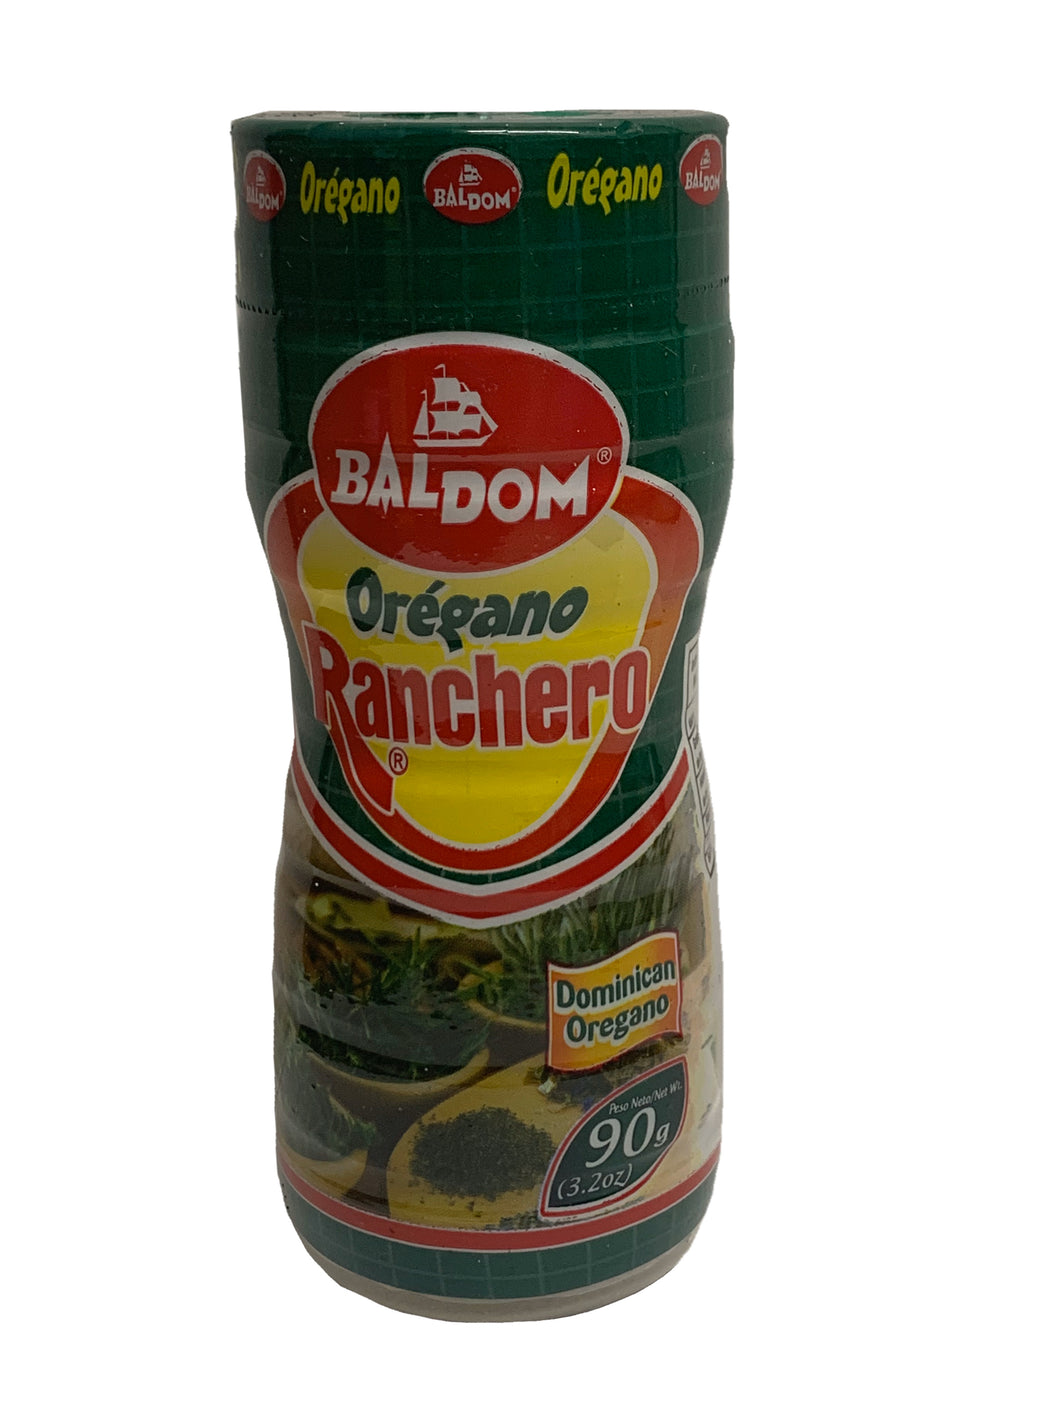 Baldom Ranchero 100% Dominican Grounded Oregano 90g